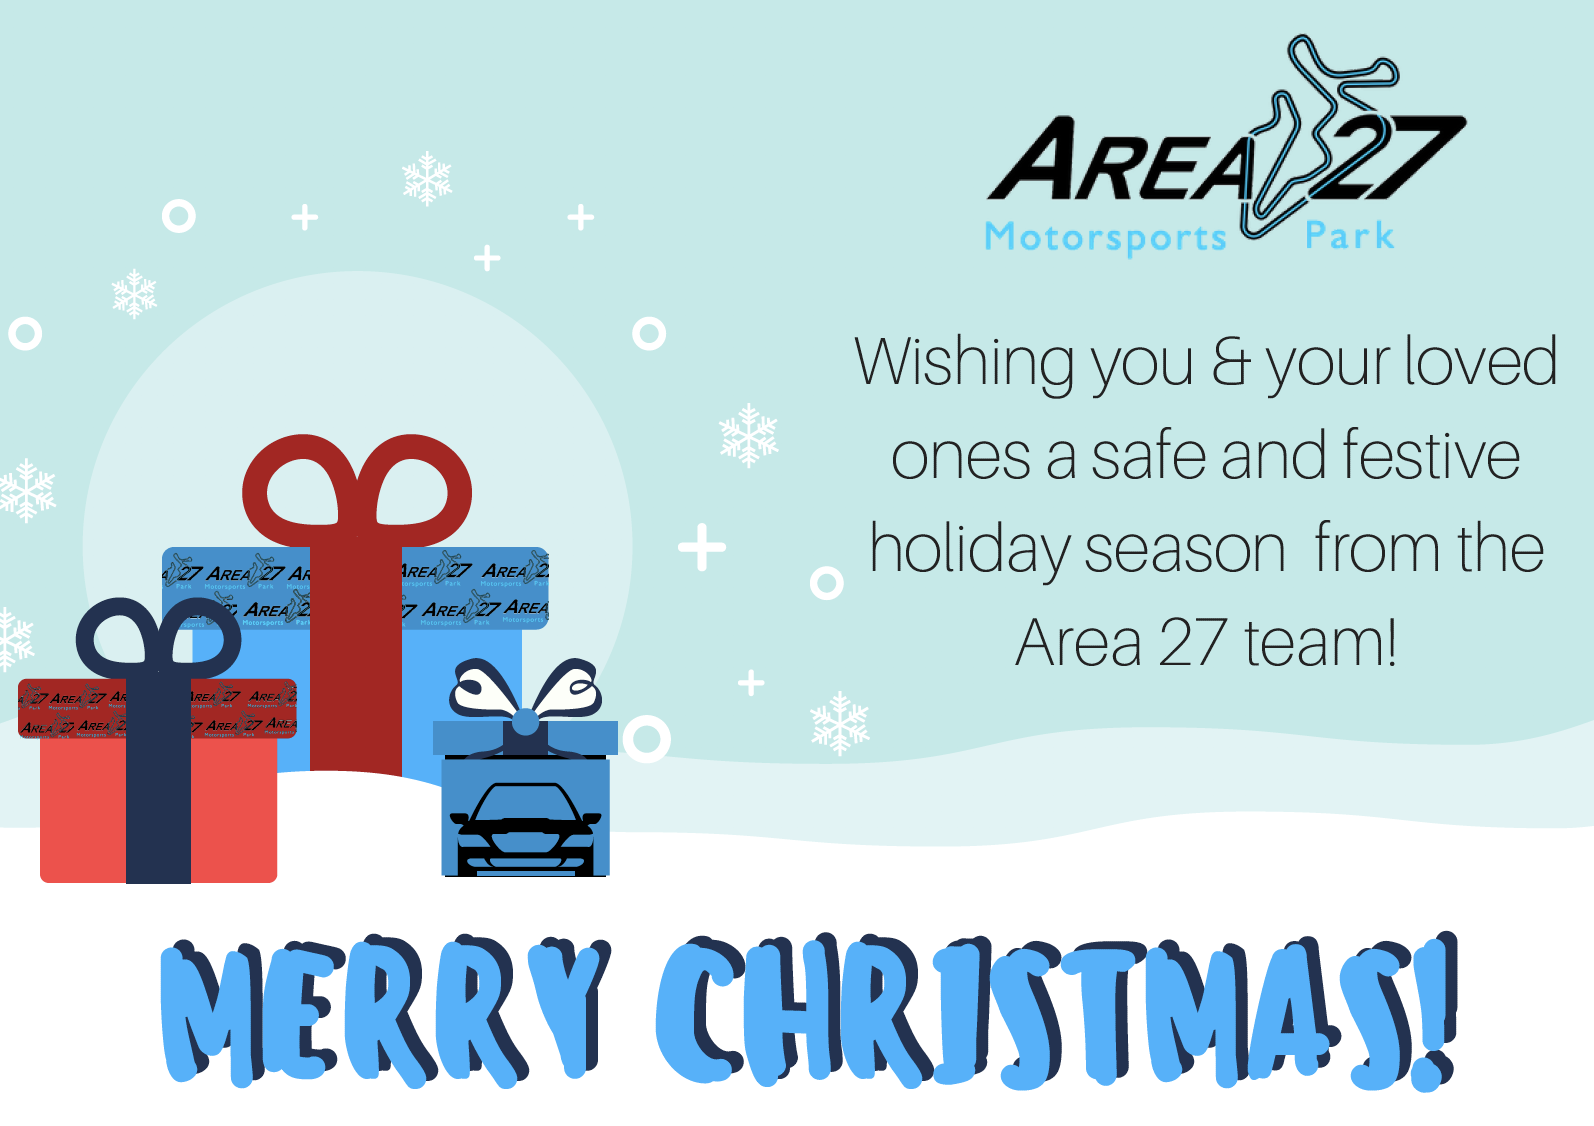 Happy Holidays from the Area 27 Team!